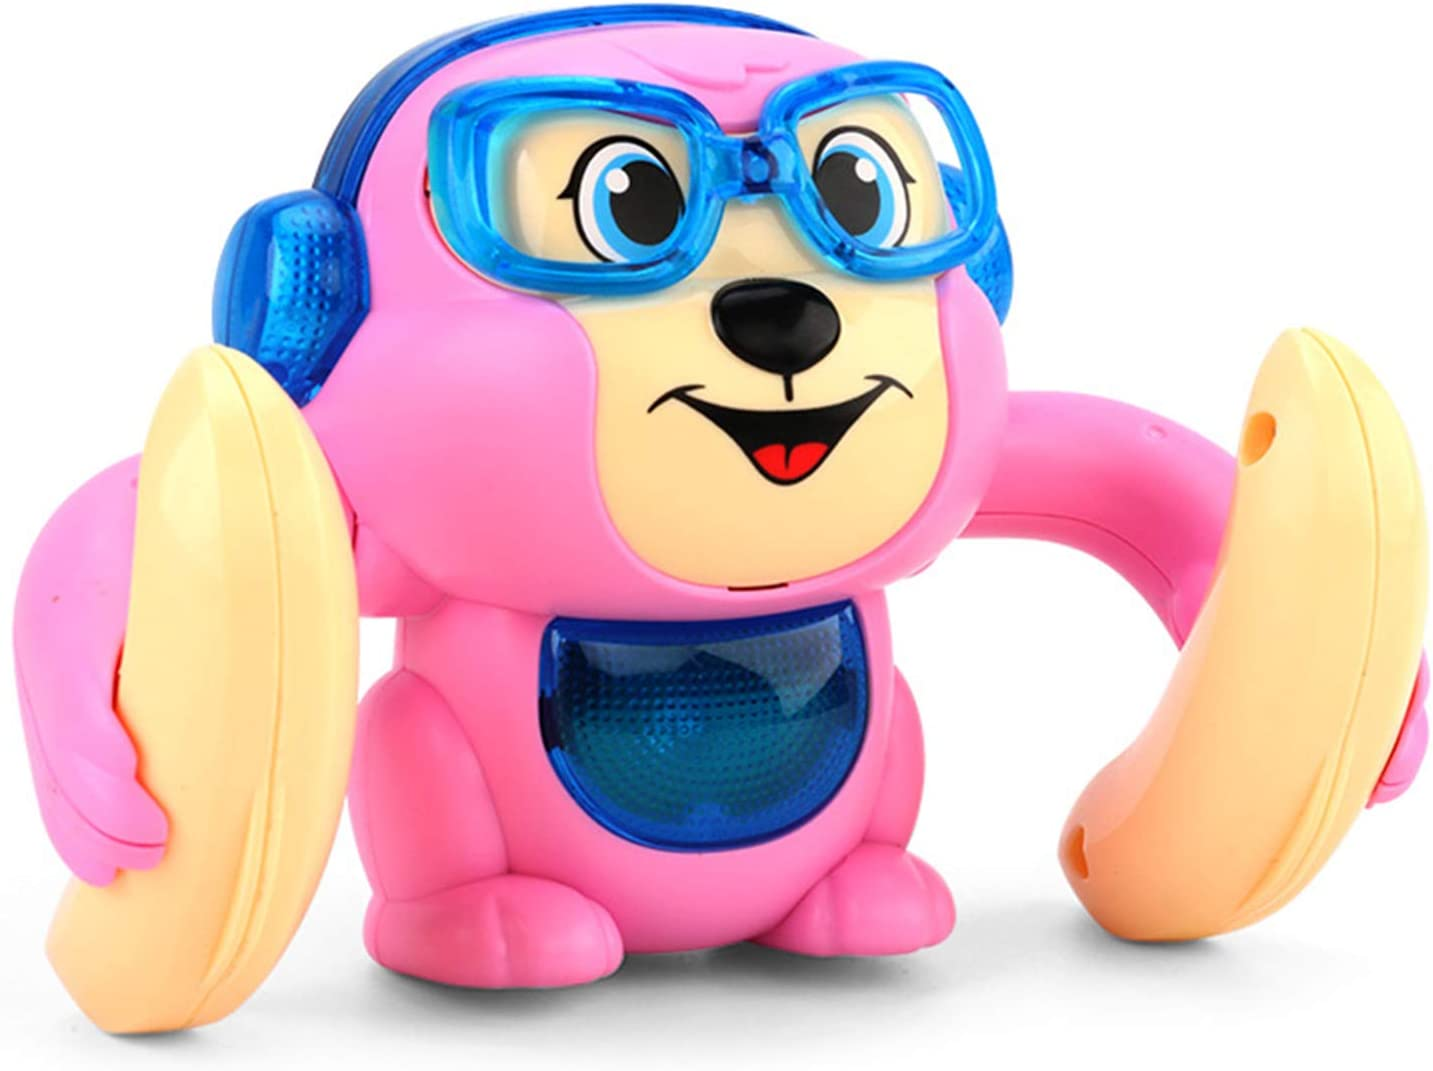 Smaani Cute Monkey Animal Doll Musical Tumbling Toy Children Electric Toys 360 Degree Flip Touching Voice Control